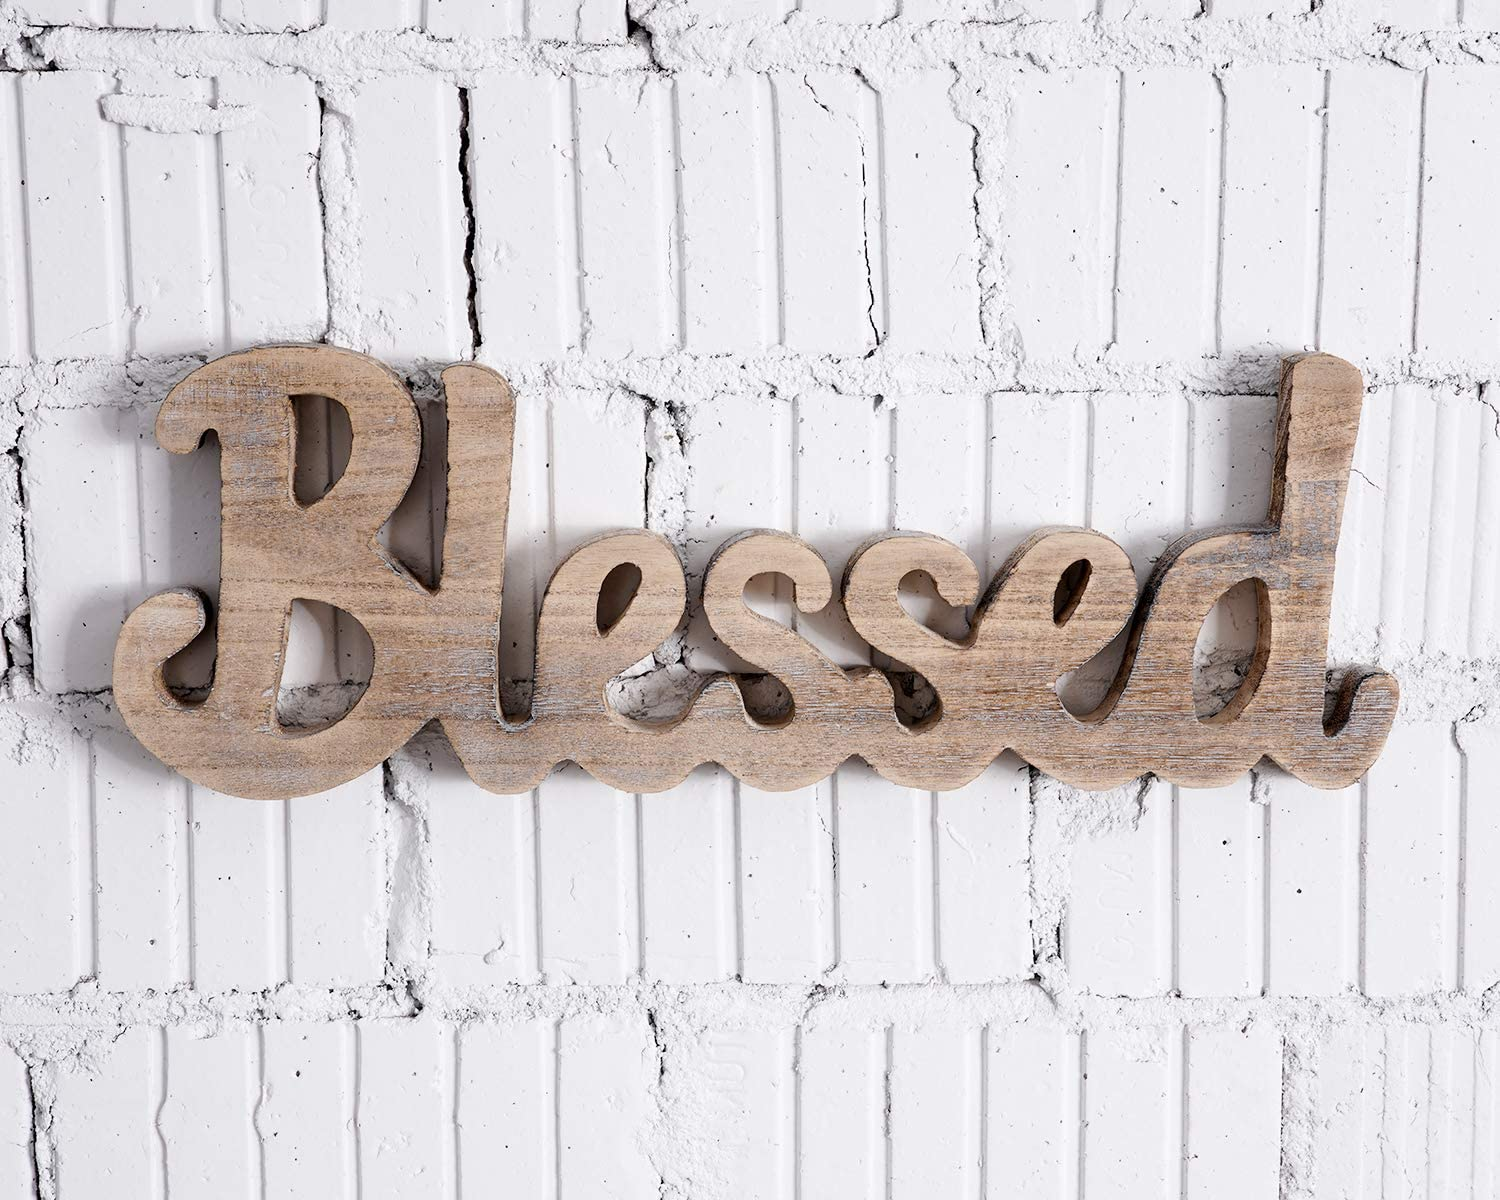 CHICVITA Blessed Freestanding Cutout Sign Made of Natural Wood, Rustic Home Gallery Wall Decor